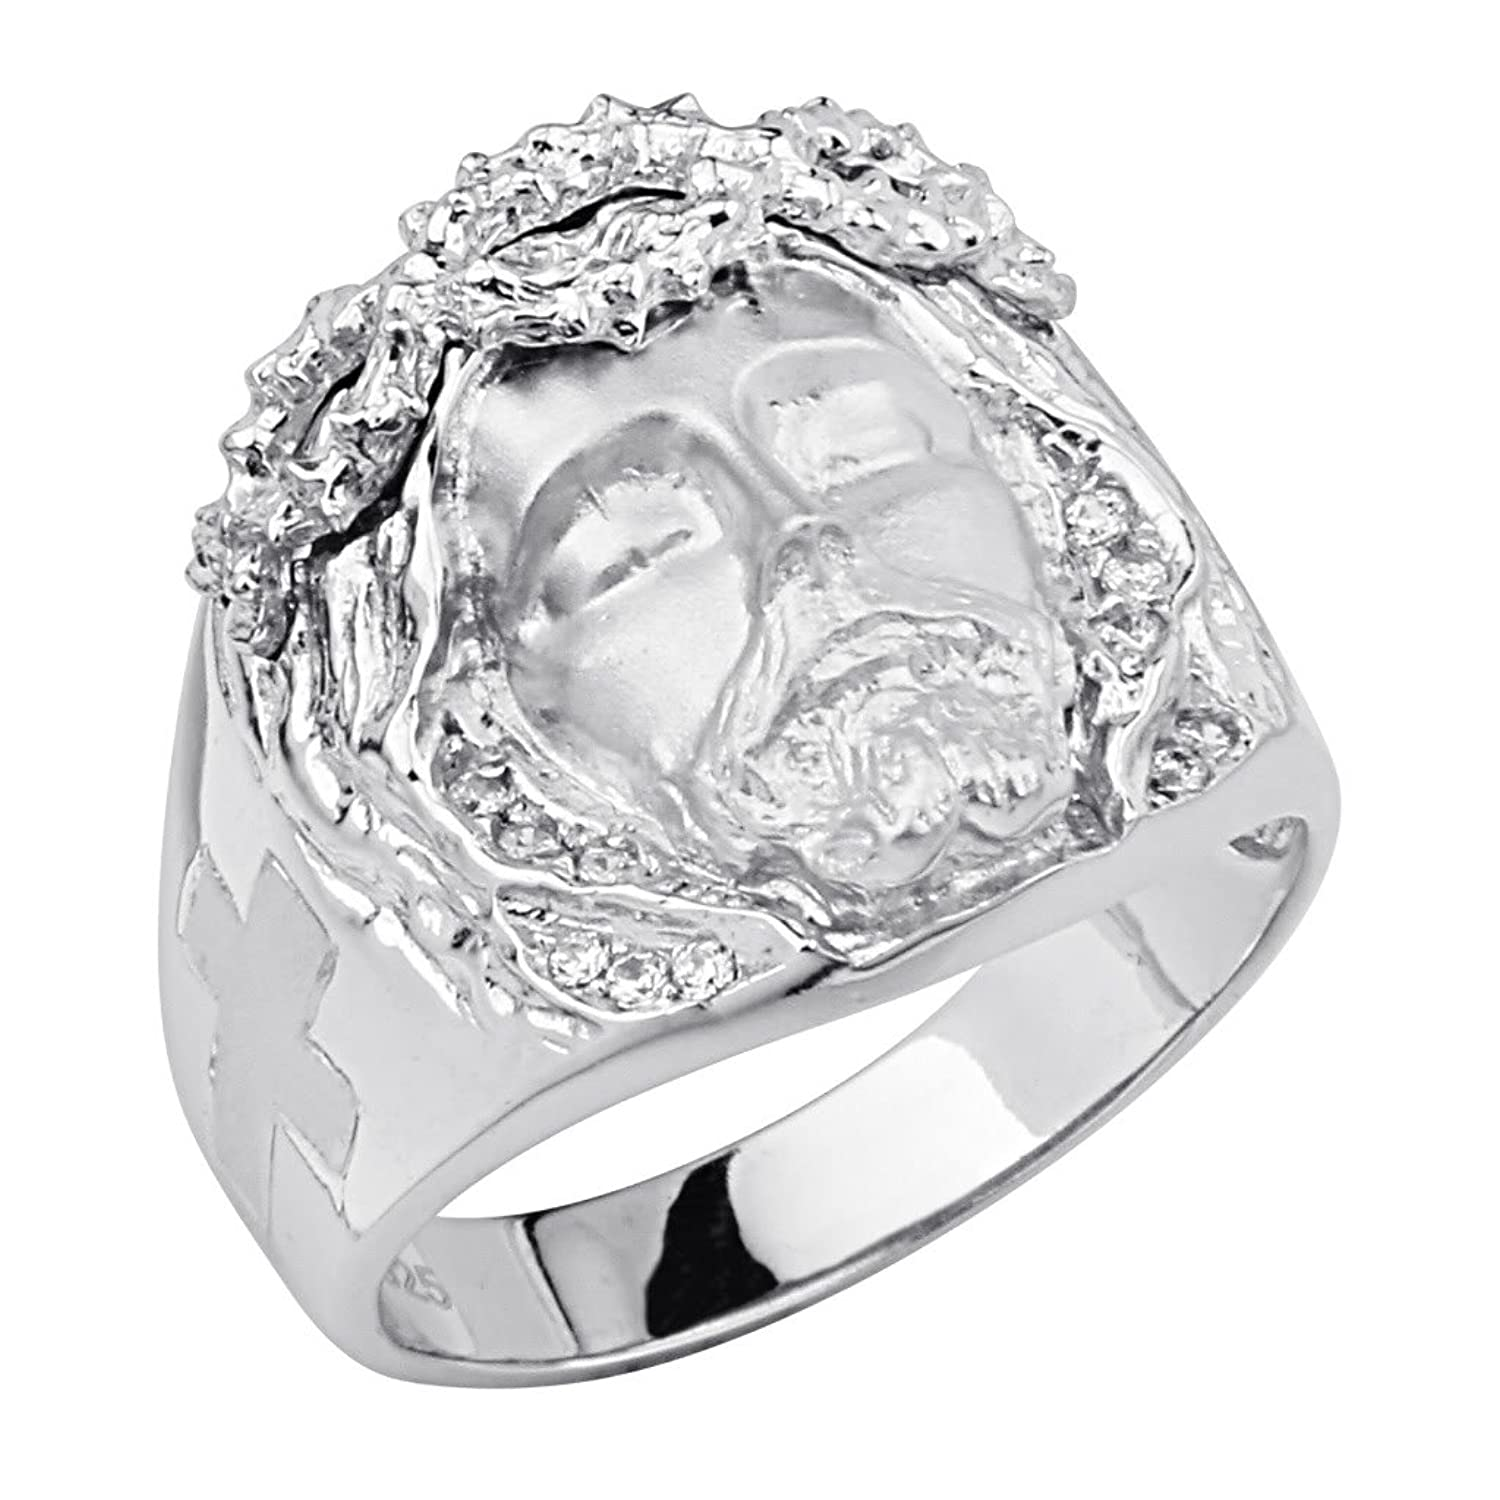 .925 Sterling Silver Rhodium Plated Jesus Crown of Thorns Men's Ring